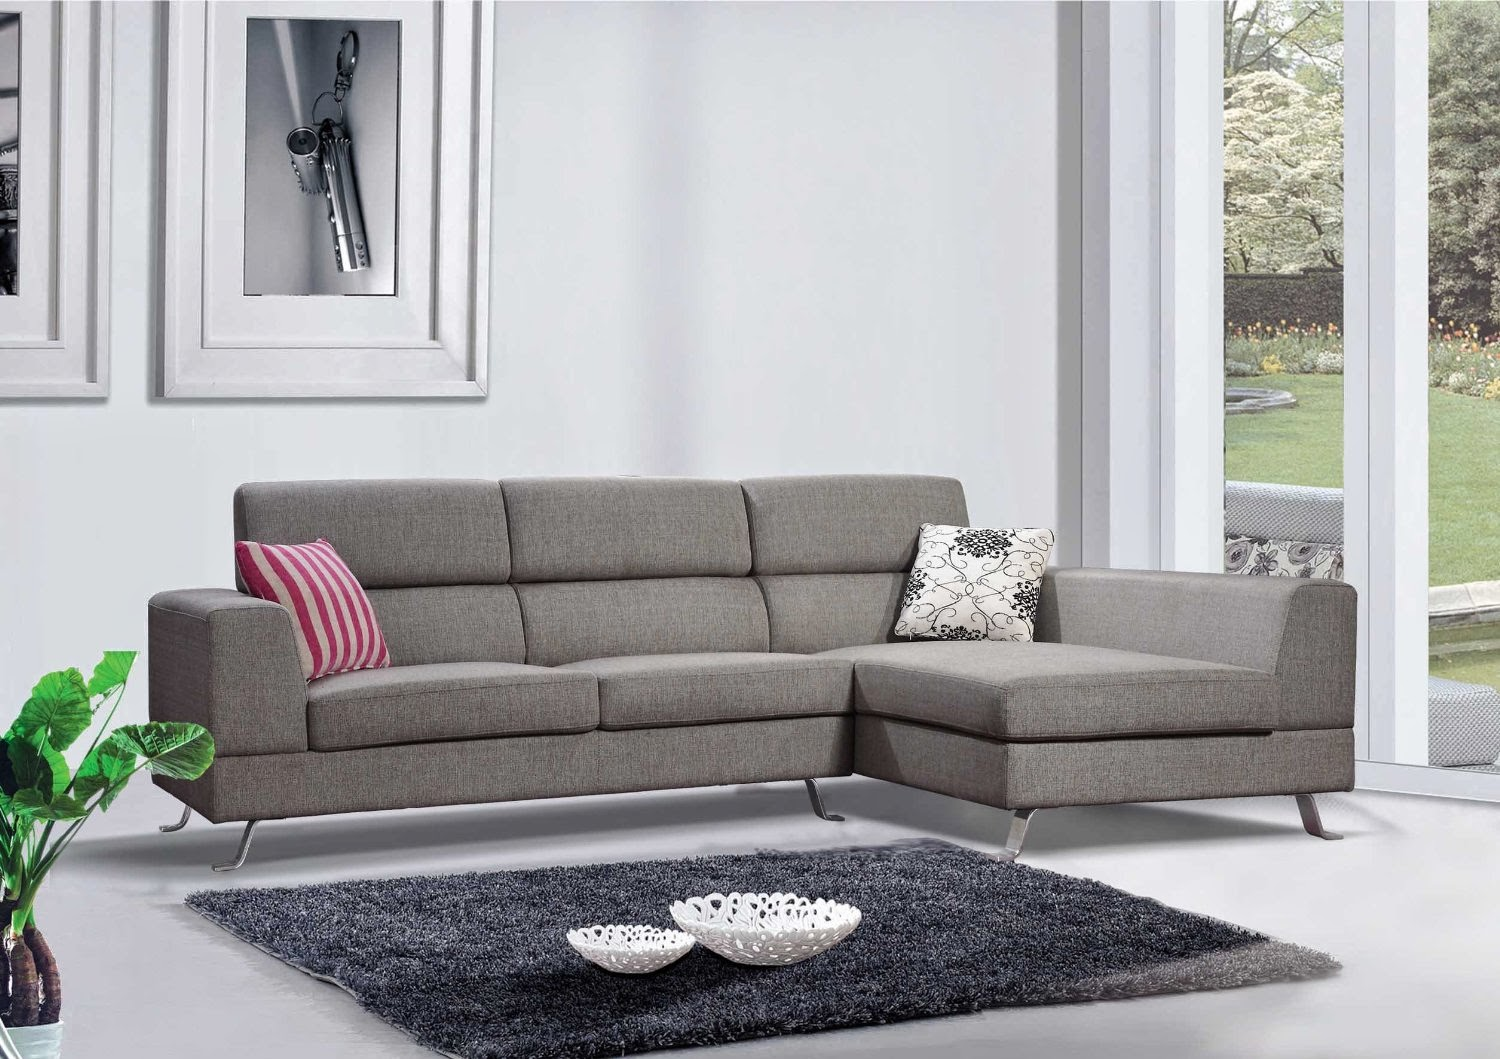 Velvet Sofa Covers Online picture on grey sectional couch with Velvet Sofa Covers Online, sofa 00406a4dc6fb1cac9776ca304370ffe8